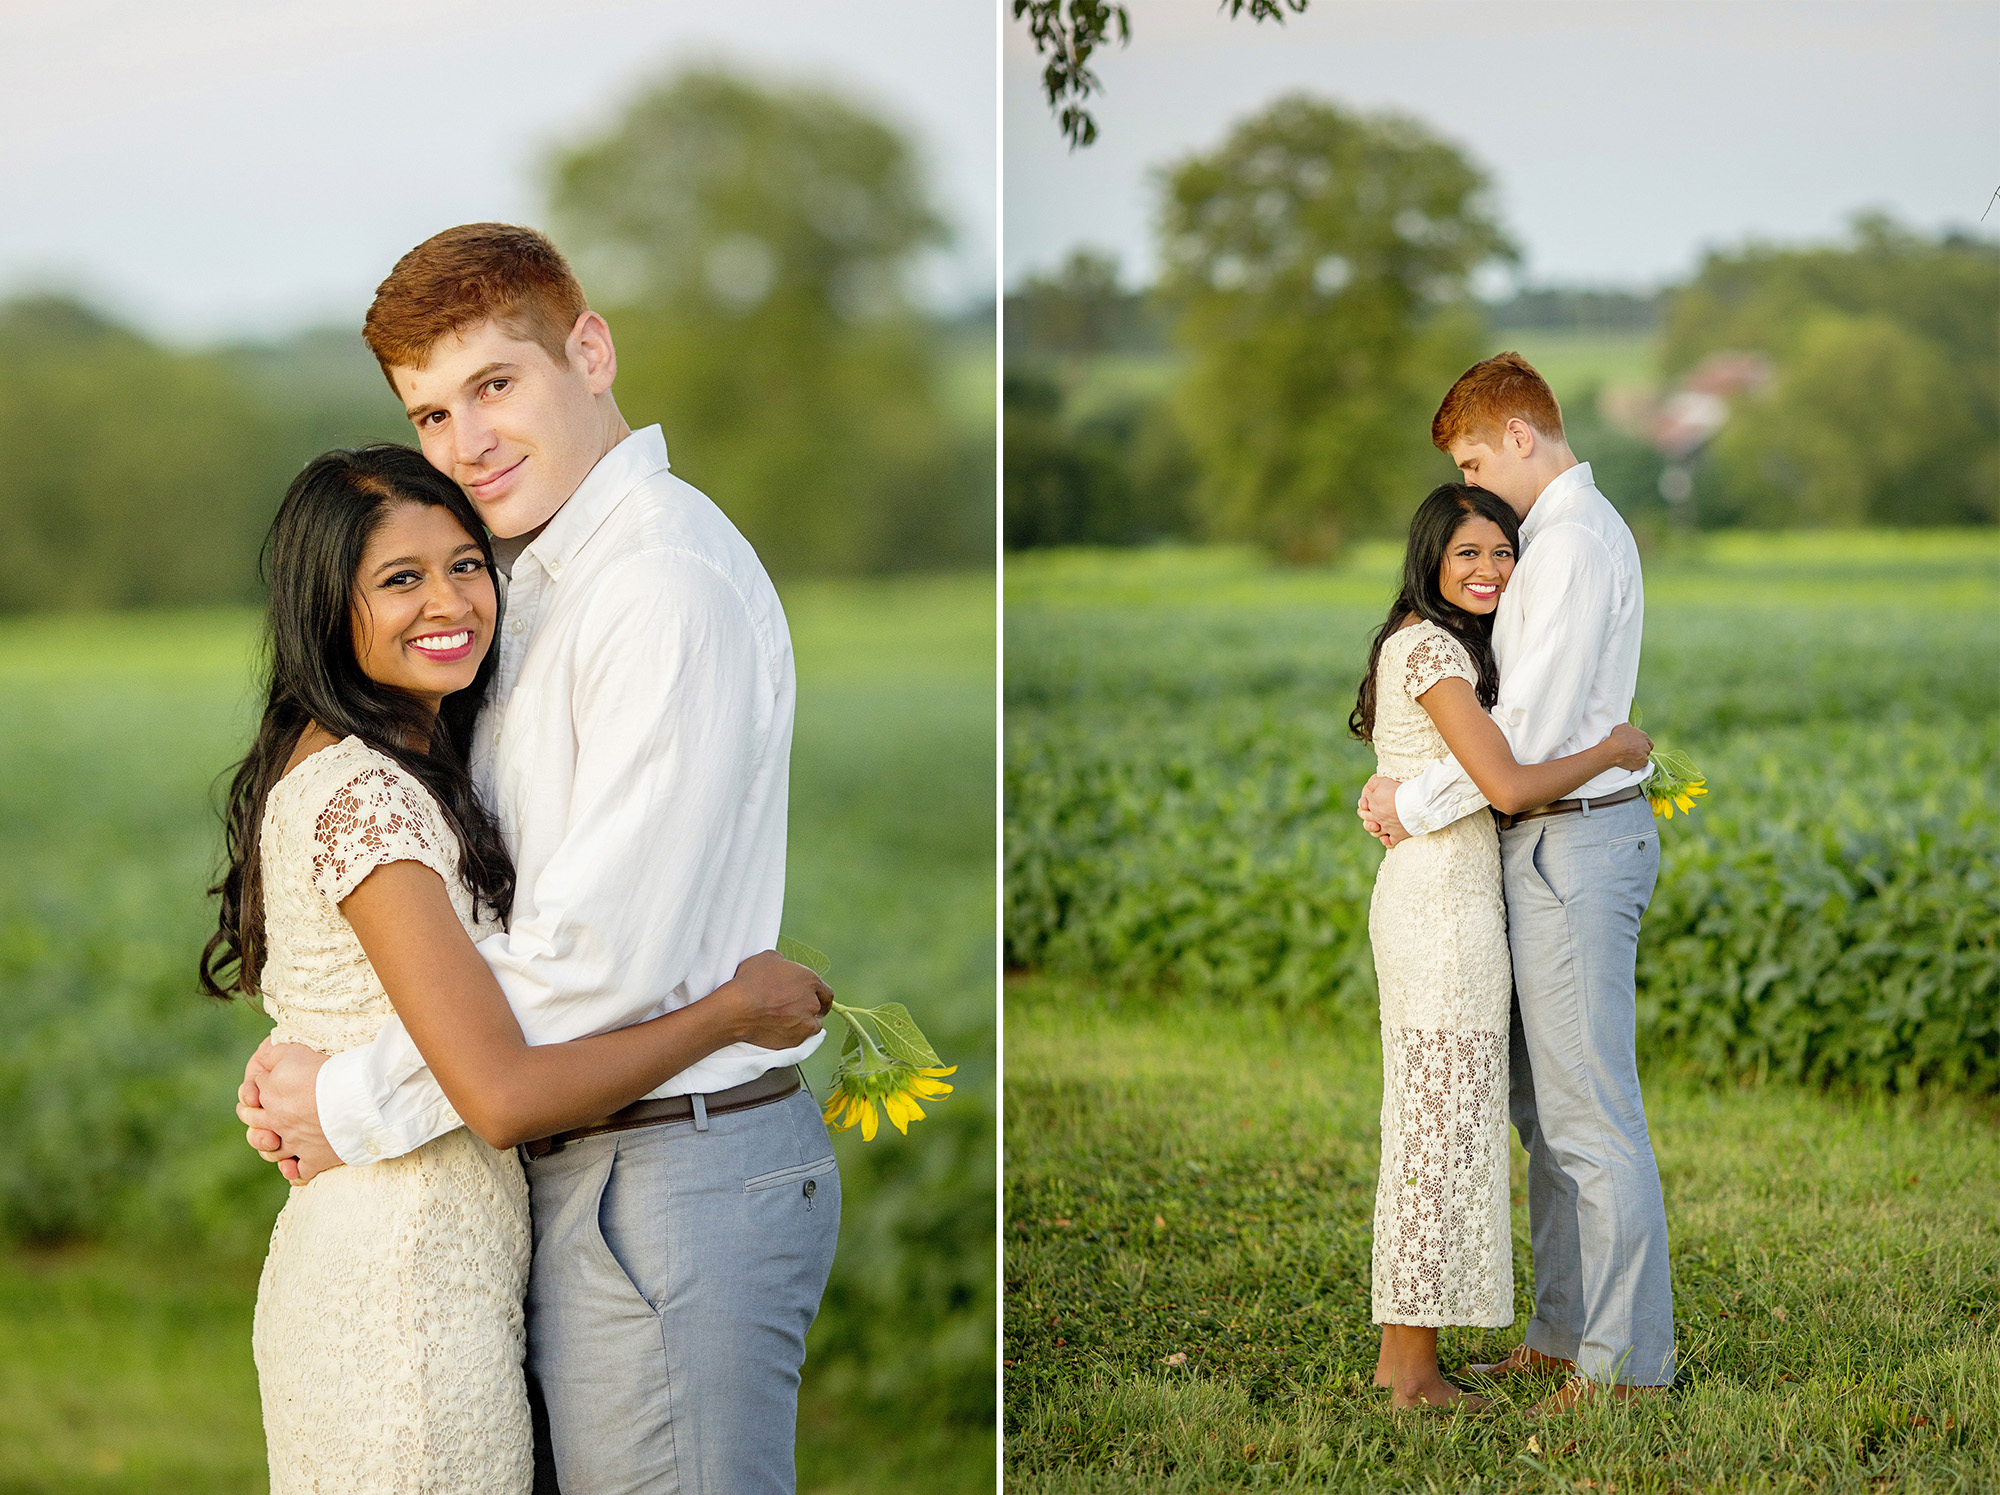 Seriously_Sabrina_Photography_Lexington_Midway_Kentucky_Engagement_Merefield_Sunflowers_Naz_and_Drew24.jpg